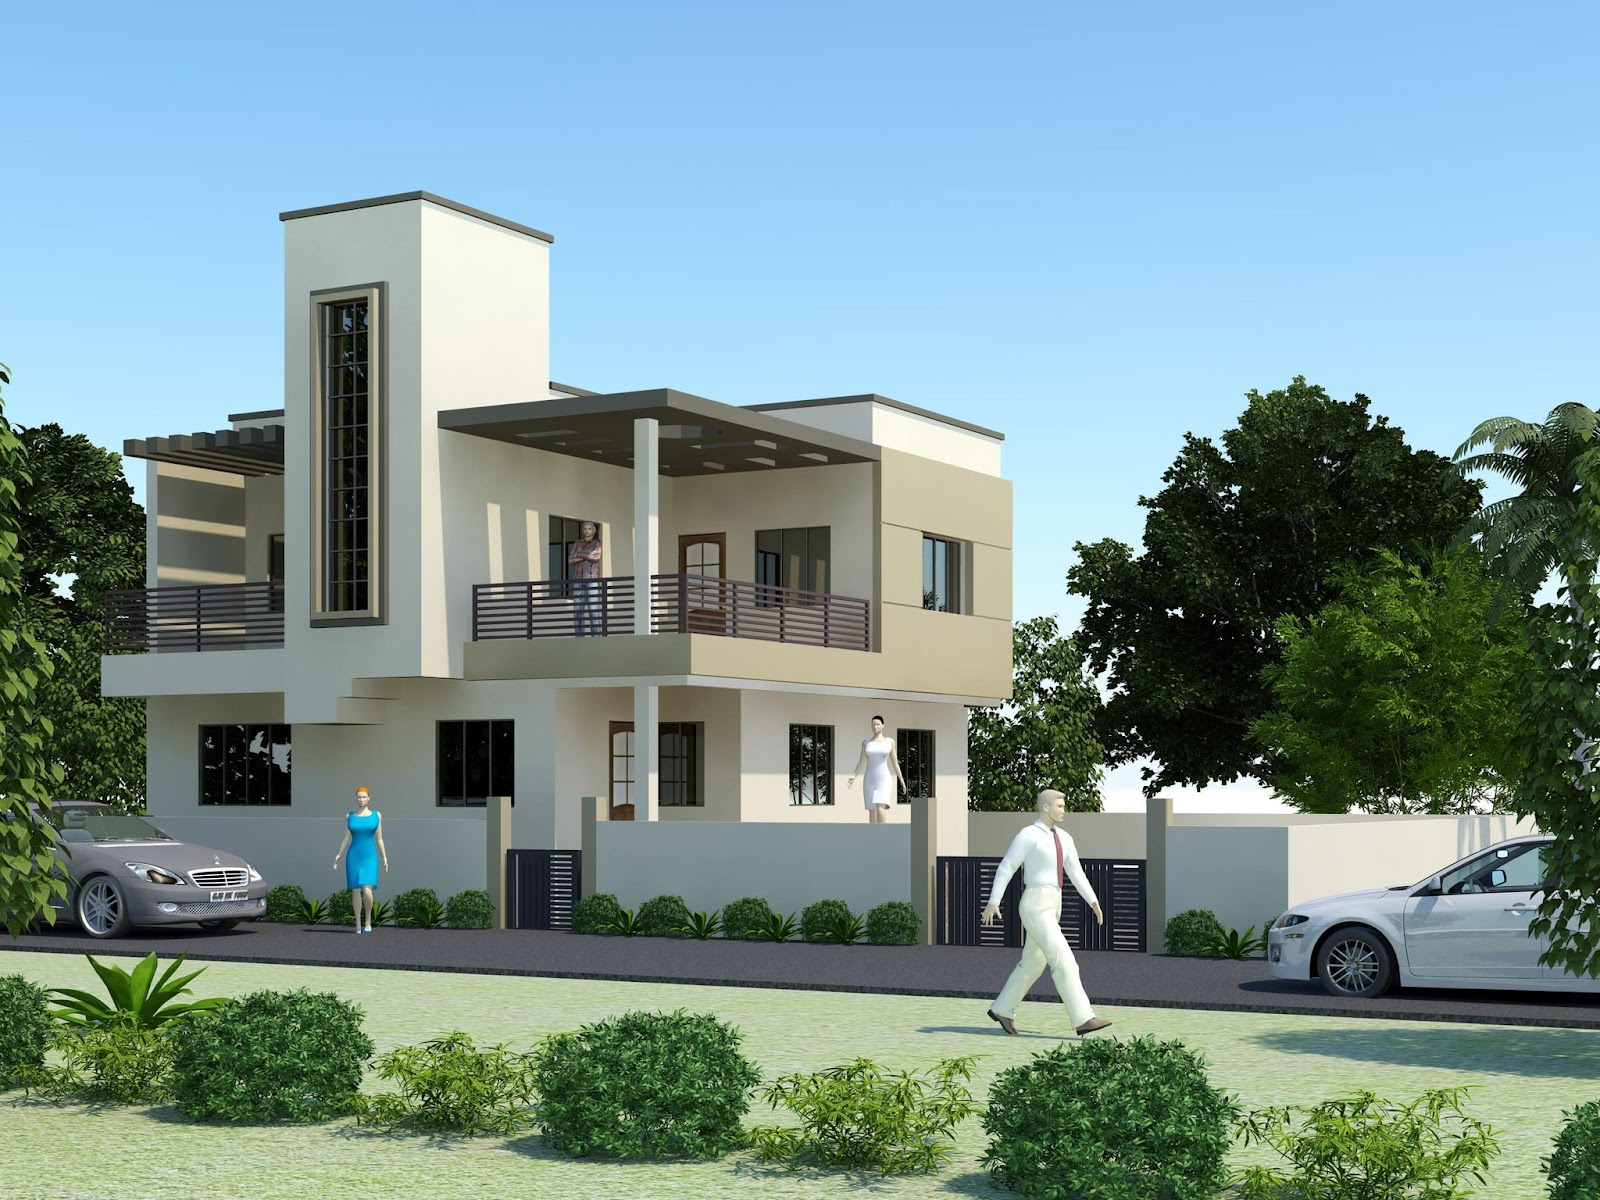 modern homes exterior designs front views pictures On home designs front